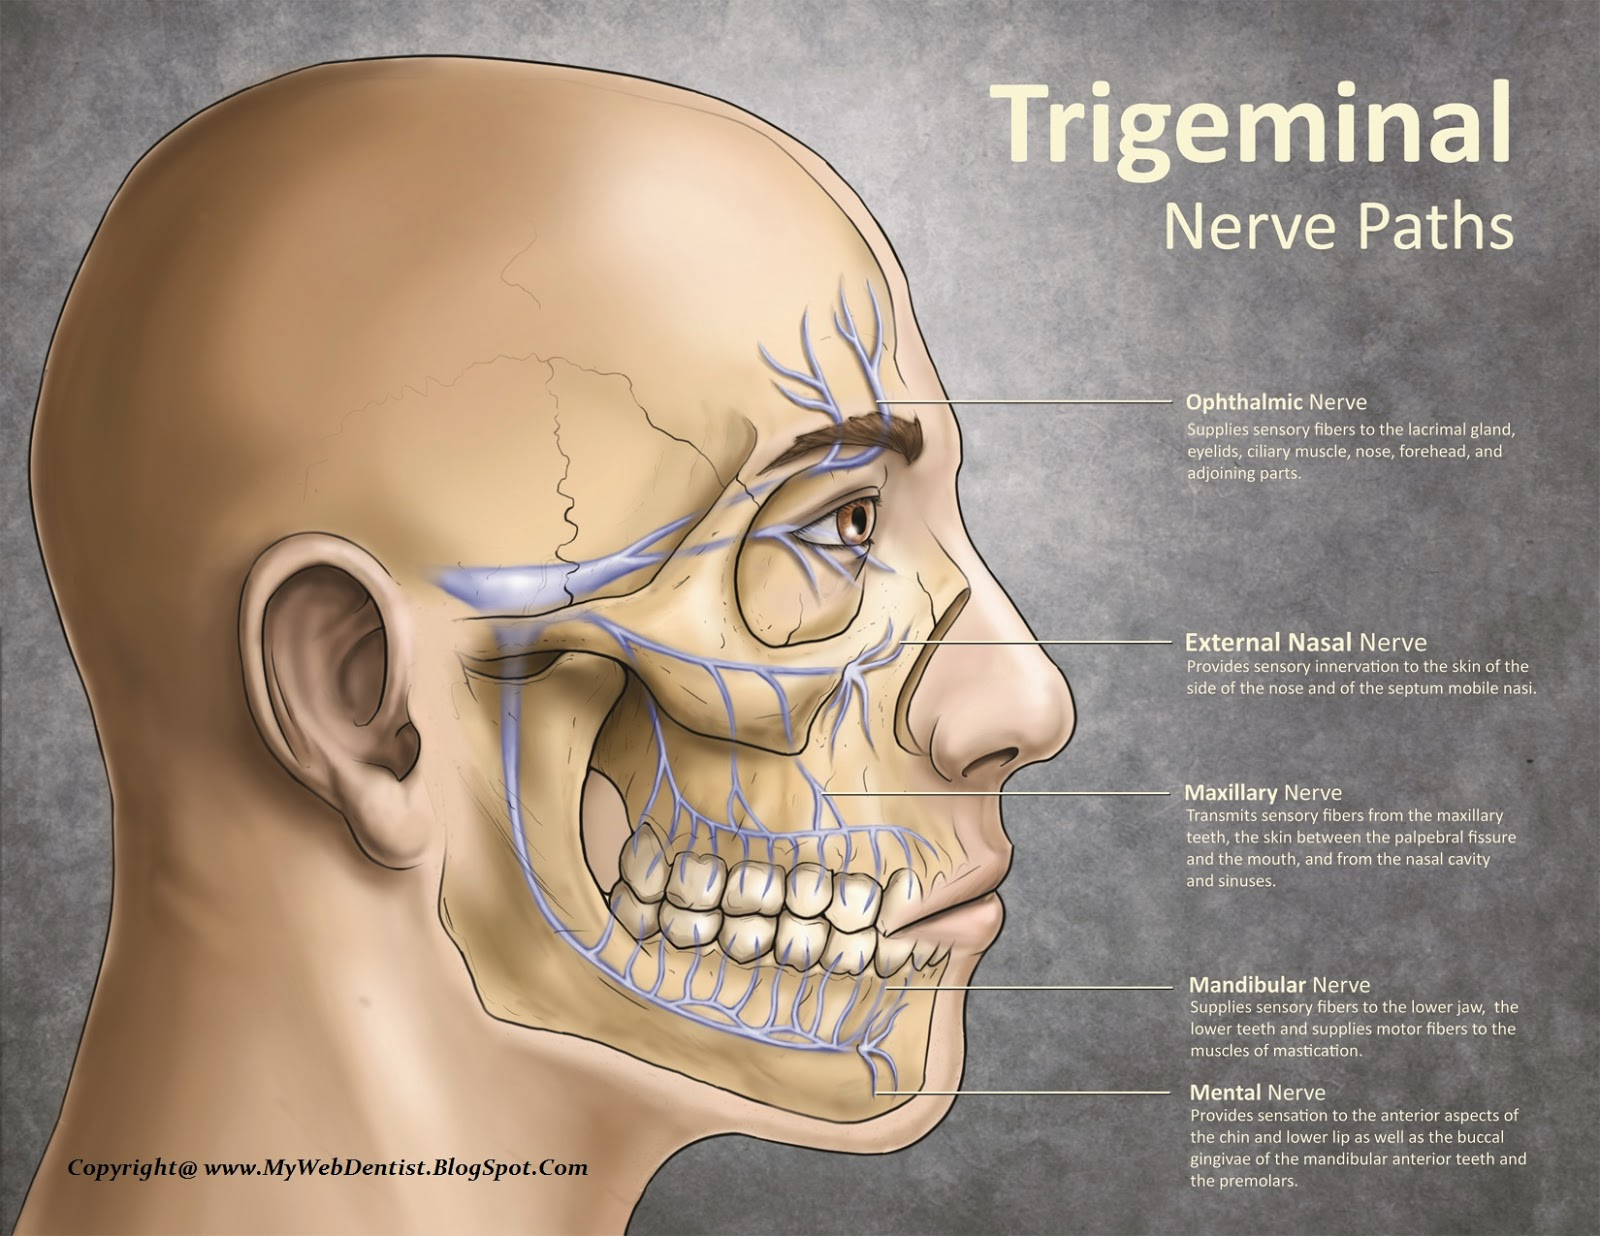 My Web Dentist Bringing Smiles On Faces Trigeminal Nerve Gross